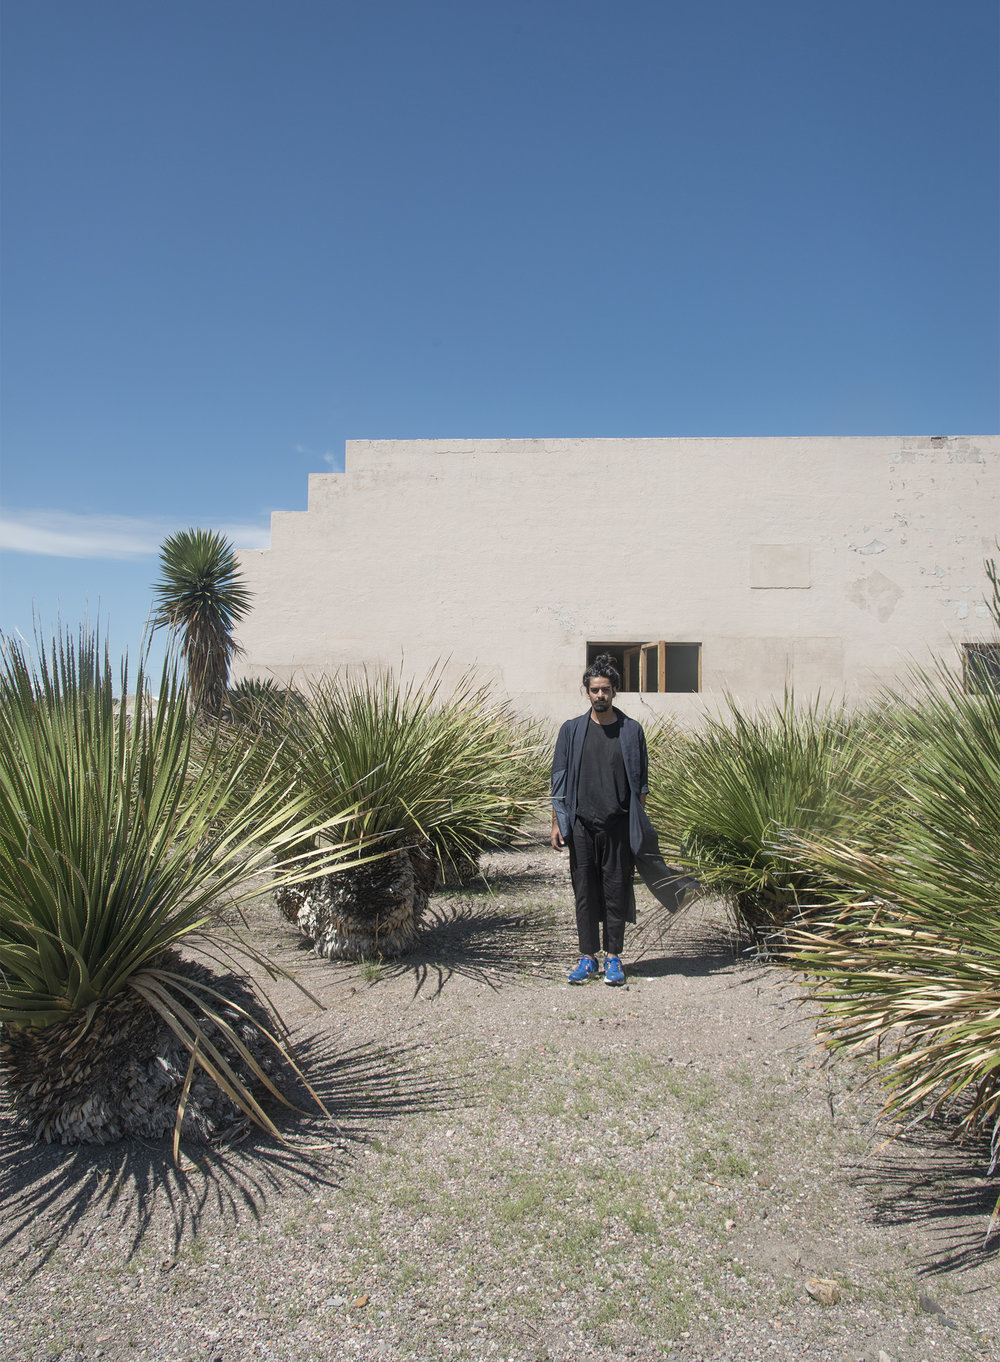 Par en Par _ On the Road _ Marfa, Texas 2.jpg